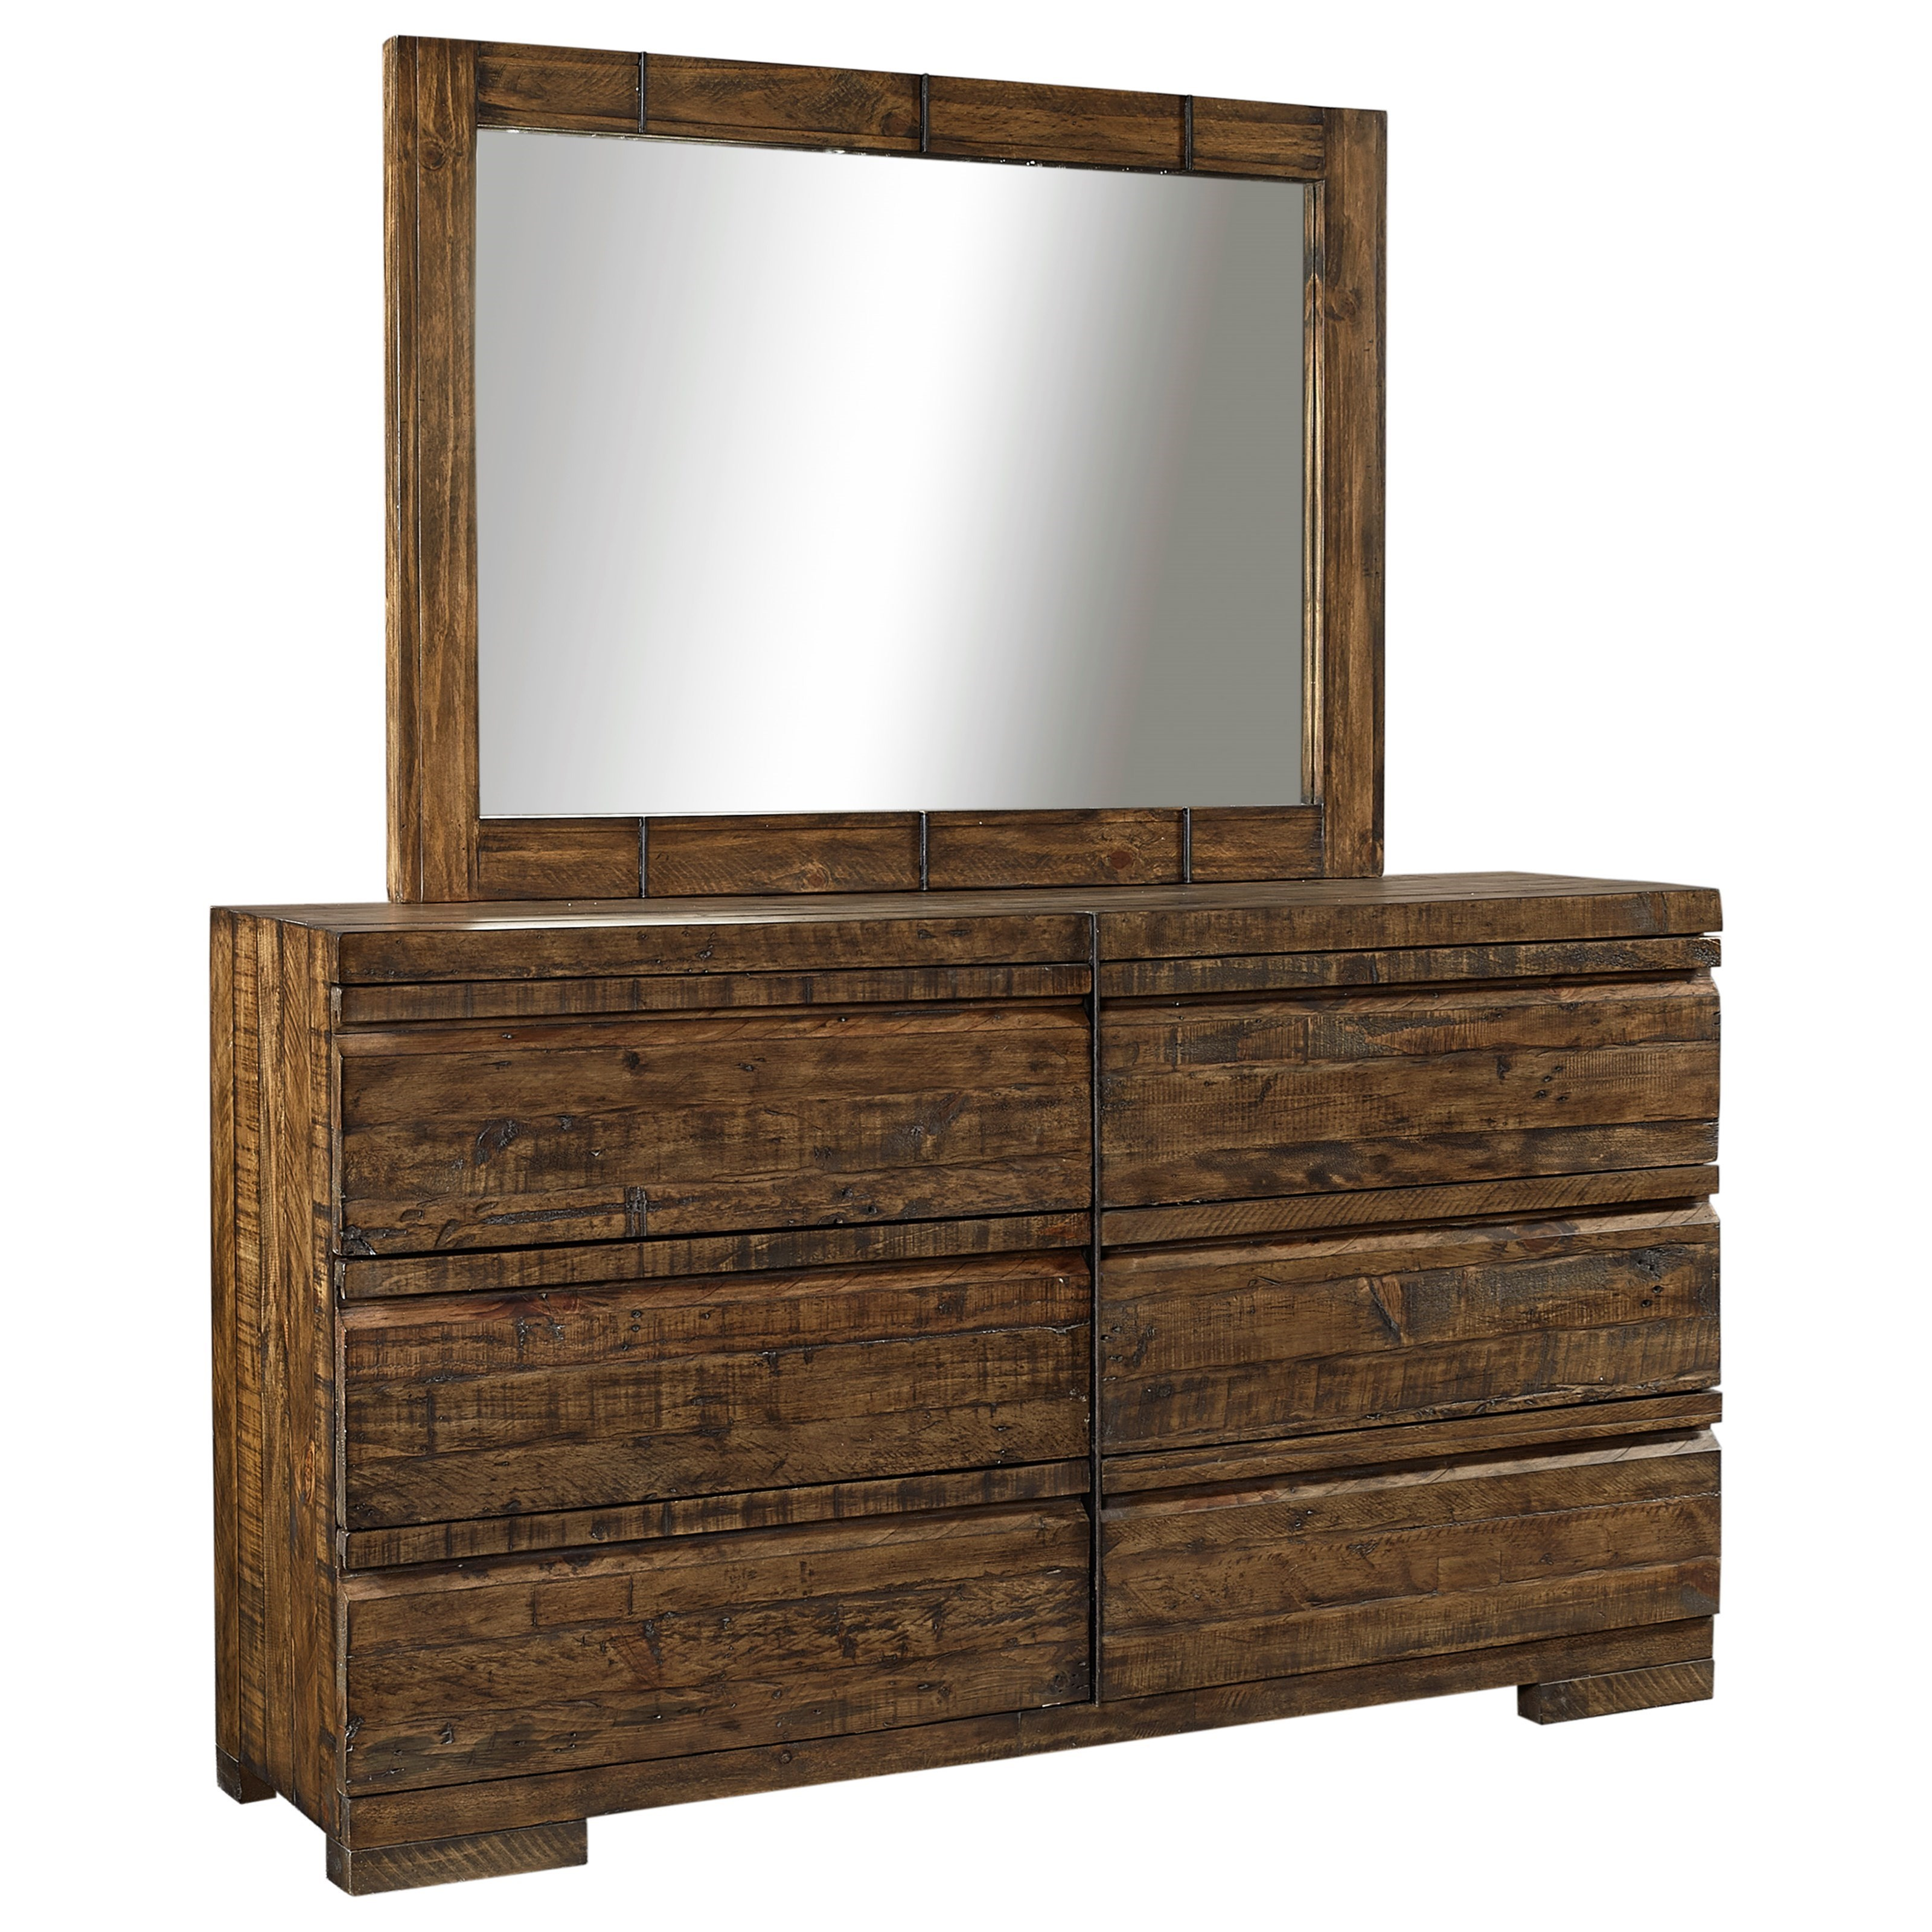 Aspenhome Dimensions Dresser and Mirror Set - Item Number: I52-453+462